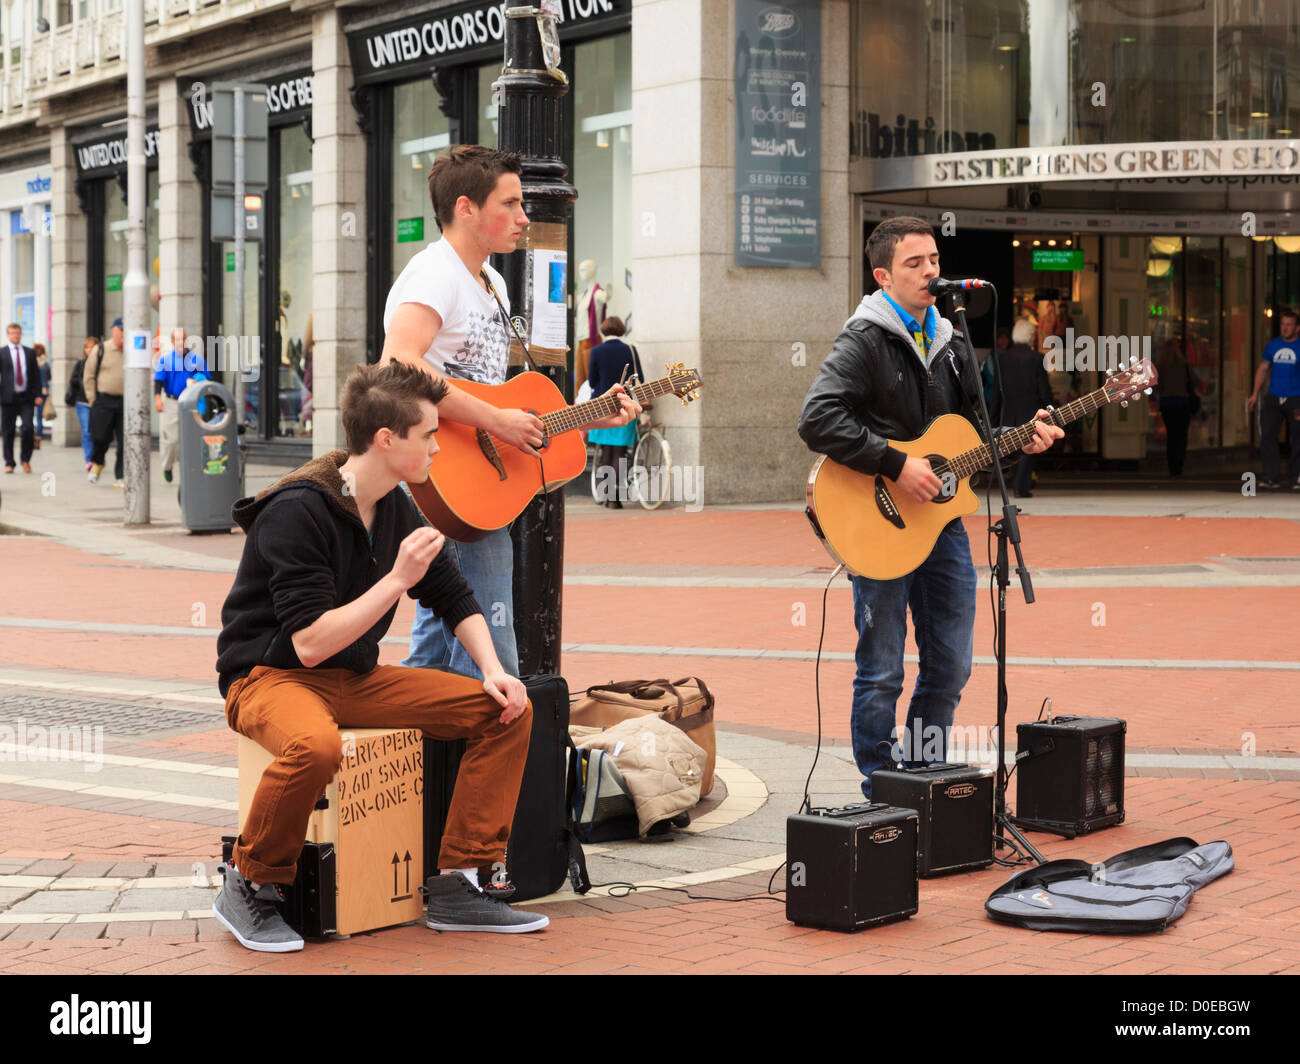 Typical street scene with three Irish musicians playing guitars busking in city centre on Grafton Street Dublin - Stock Image